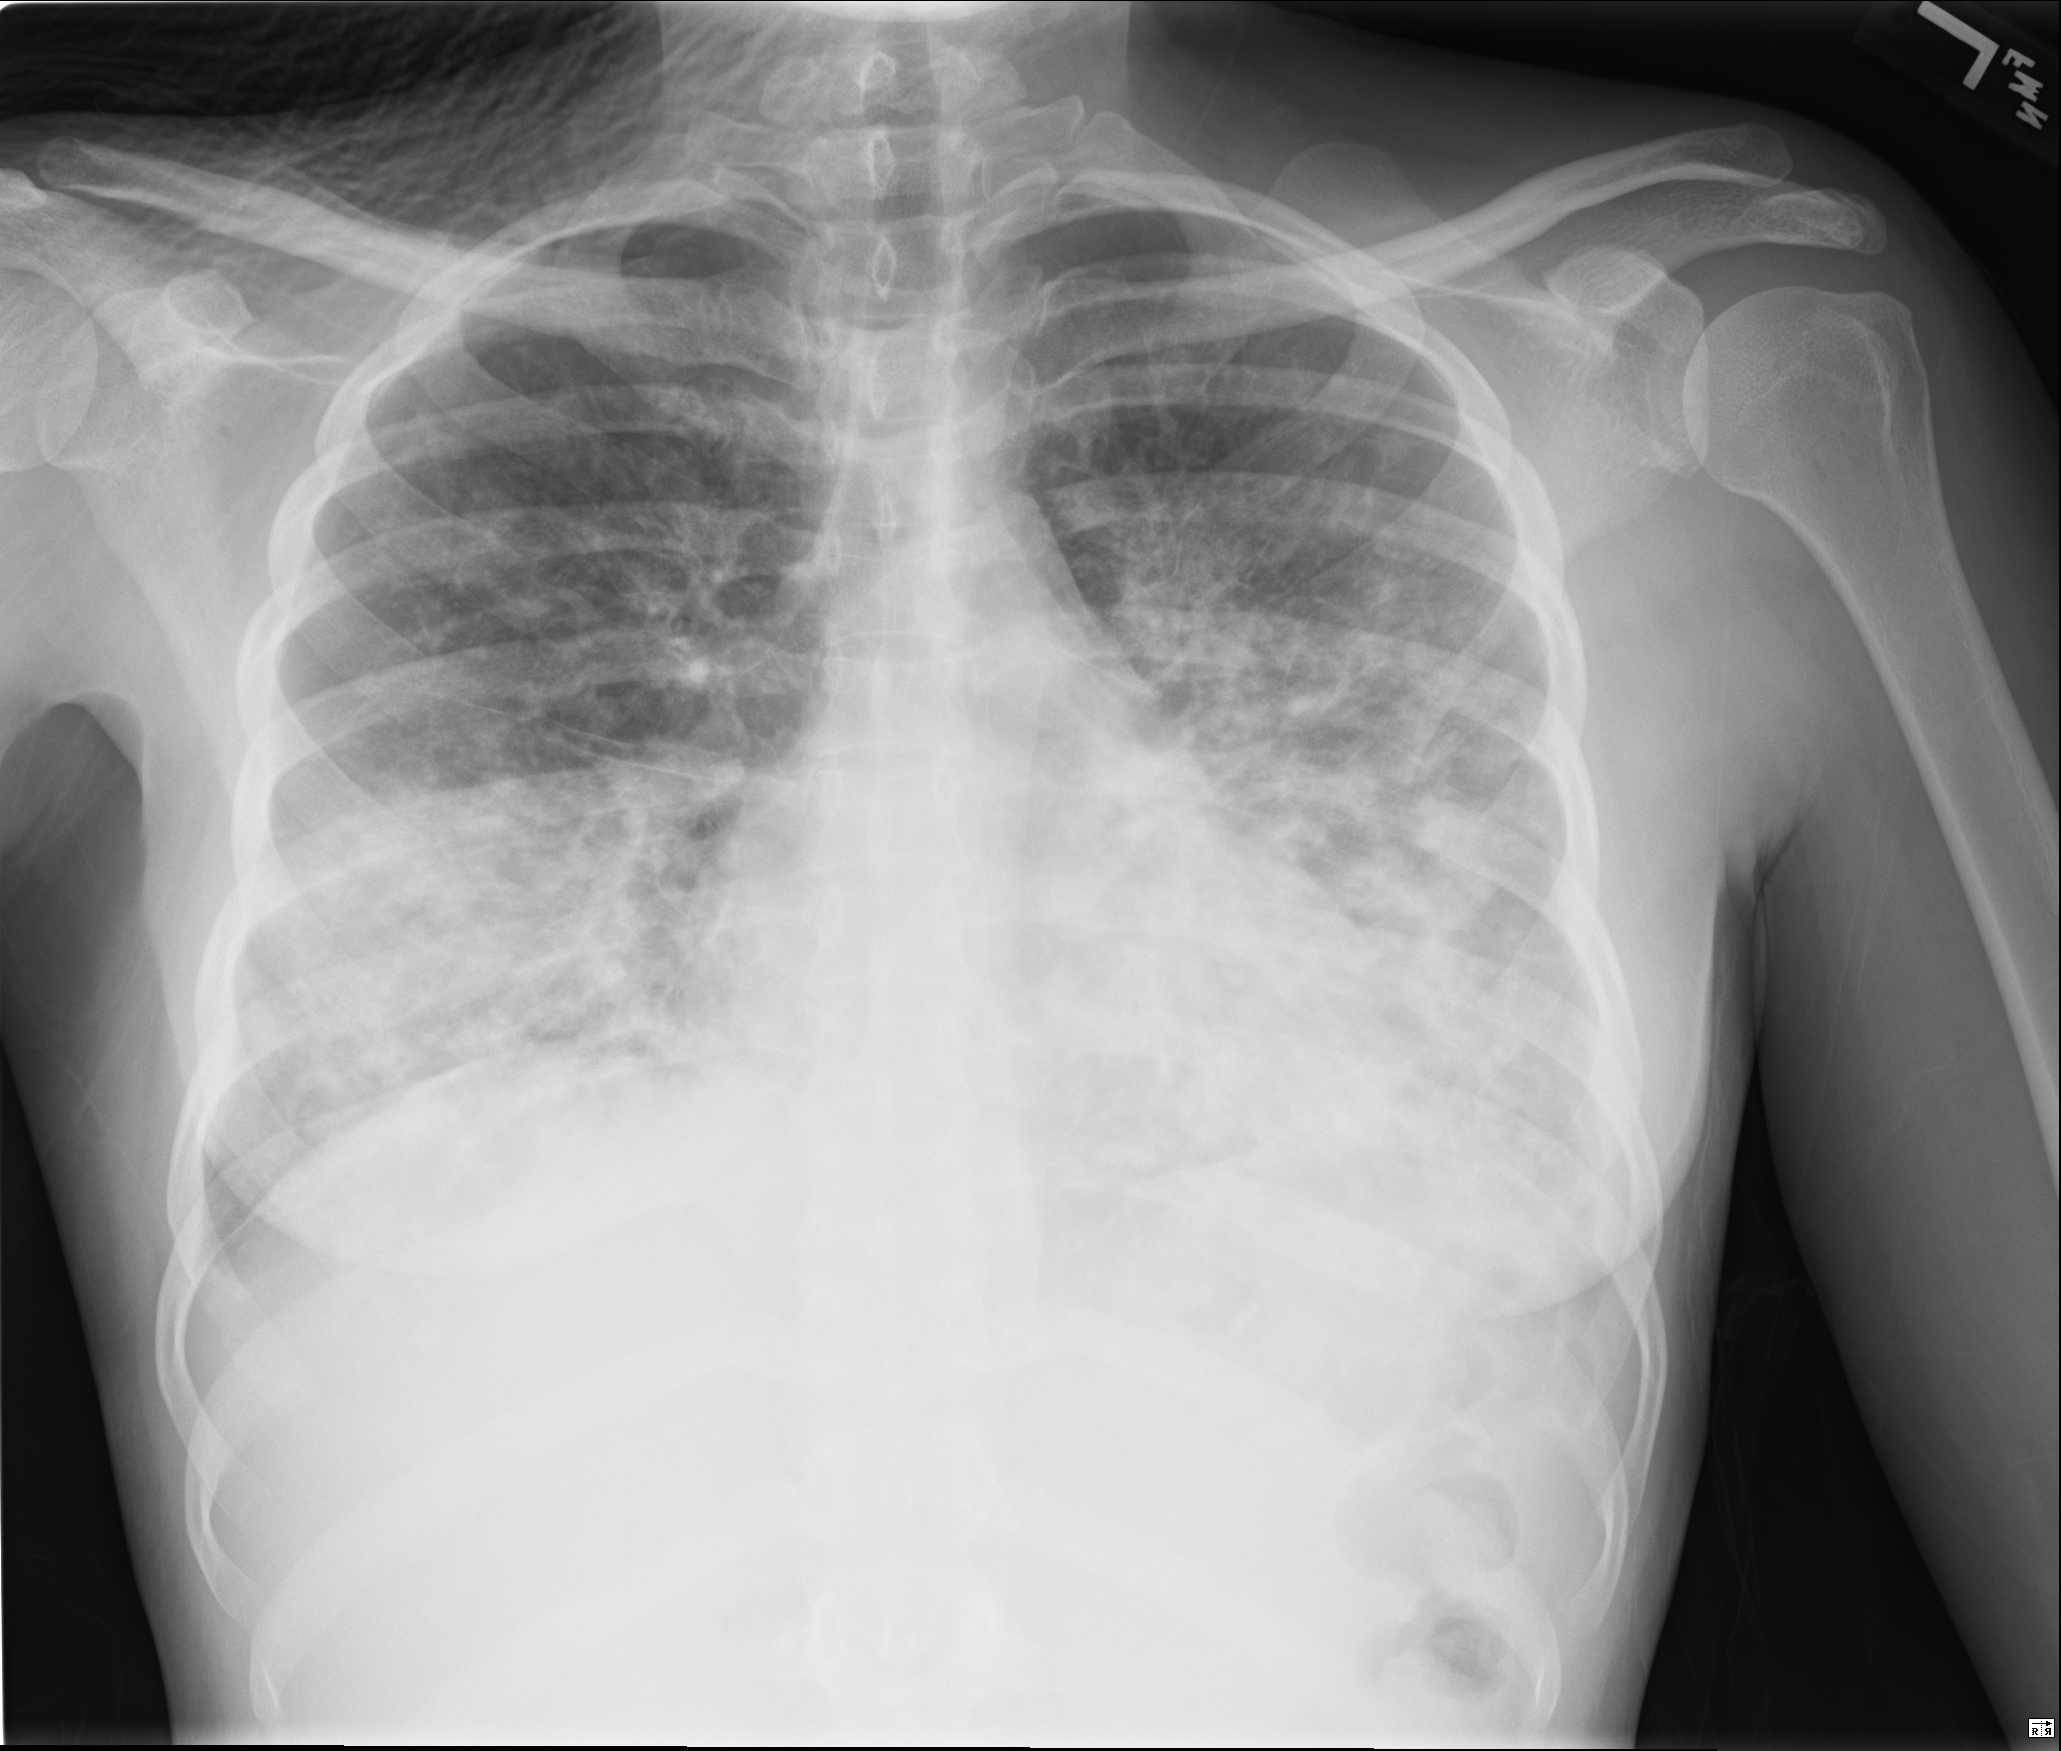 CXR with diffuse infiltrates